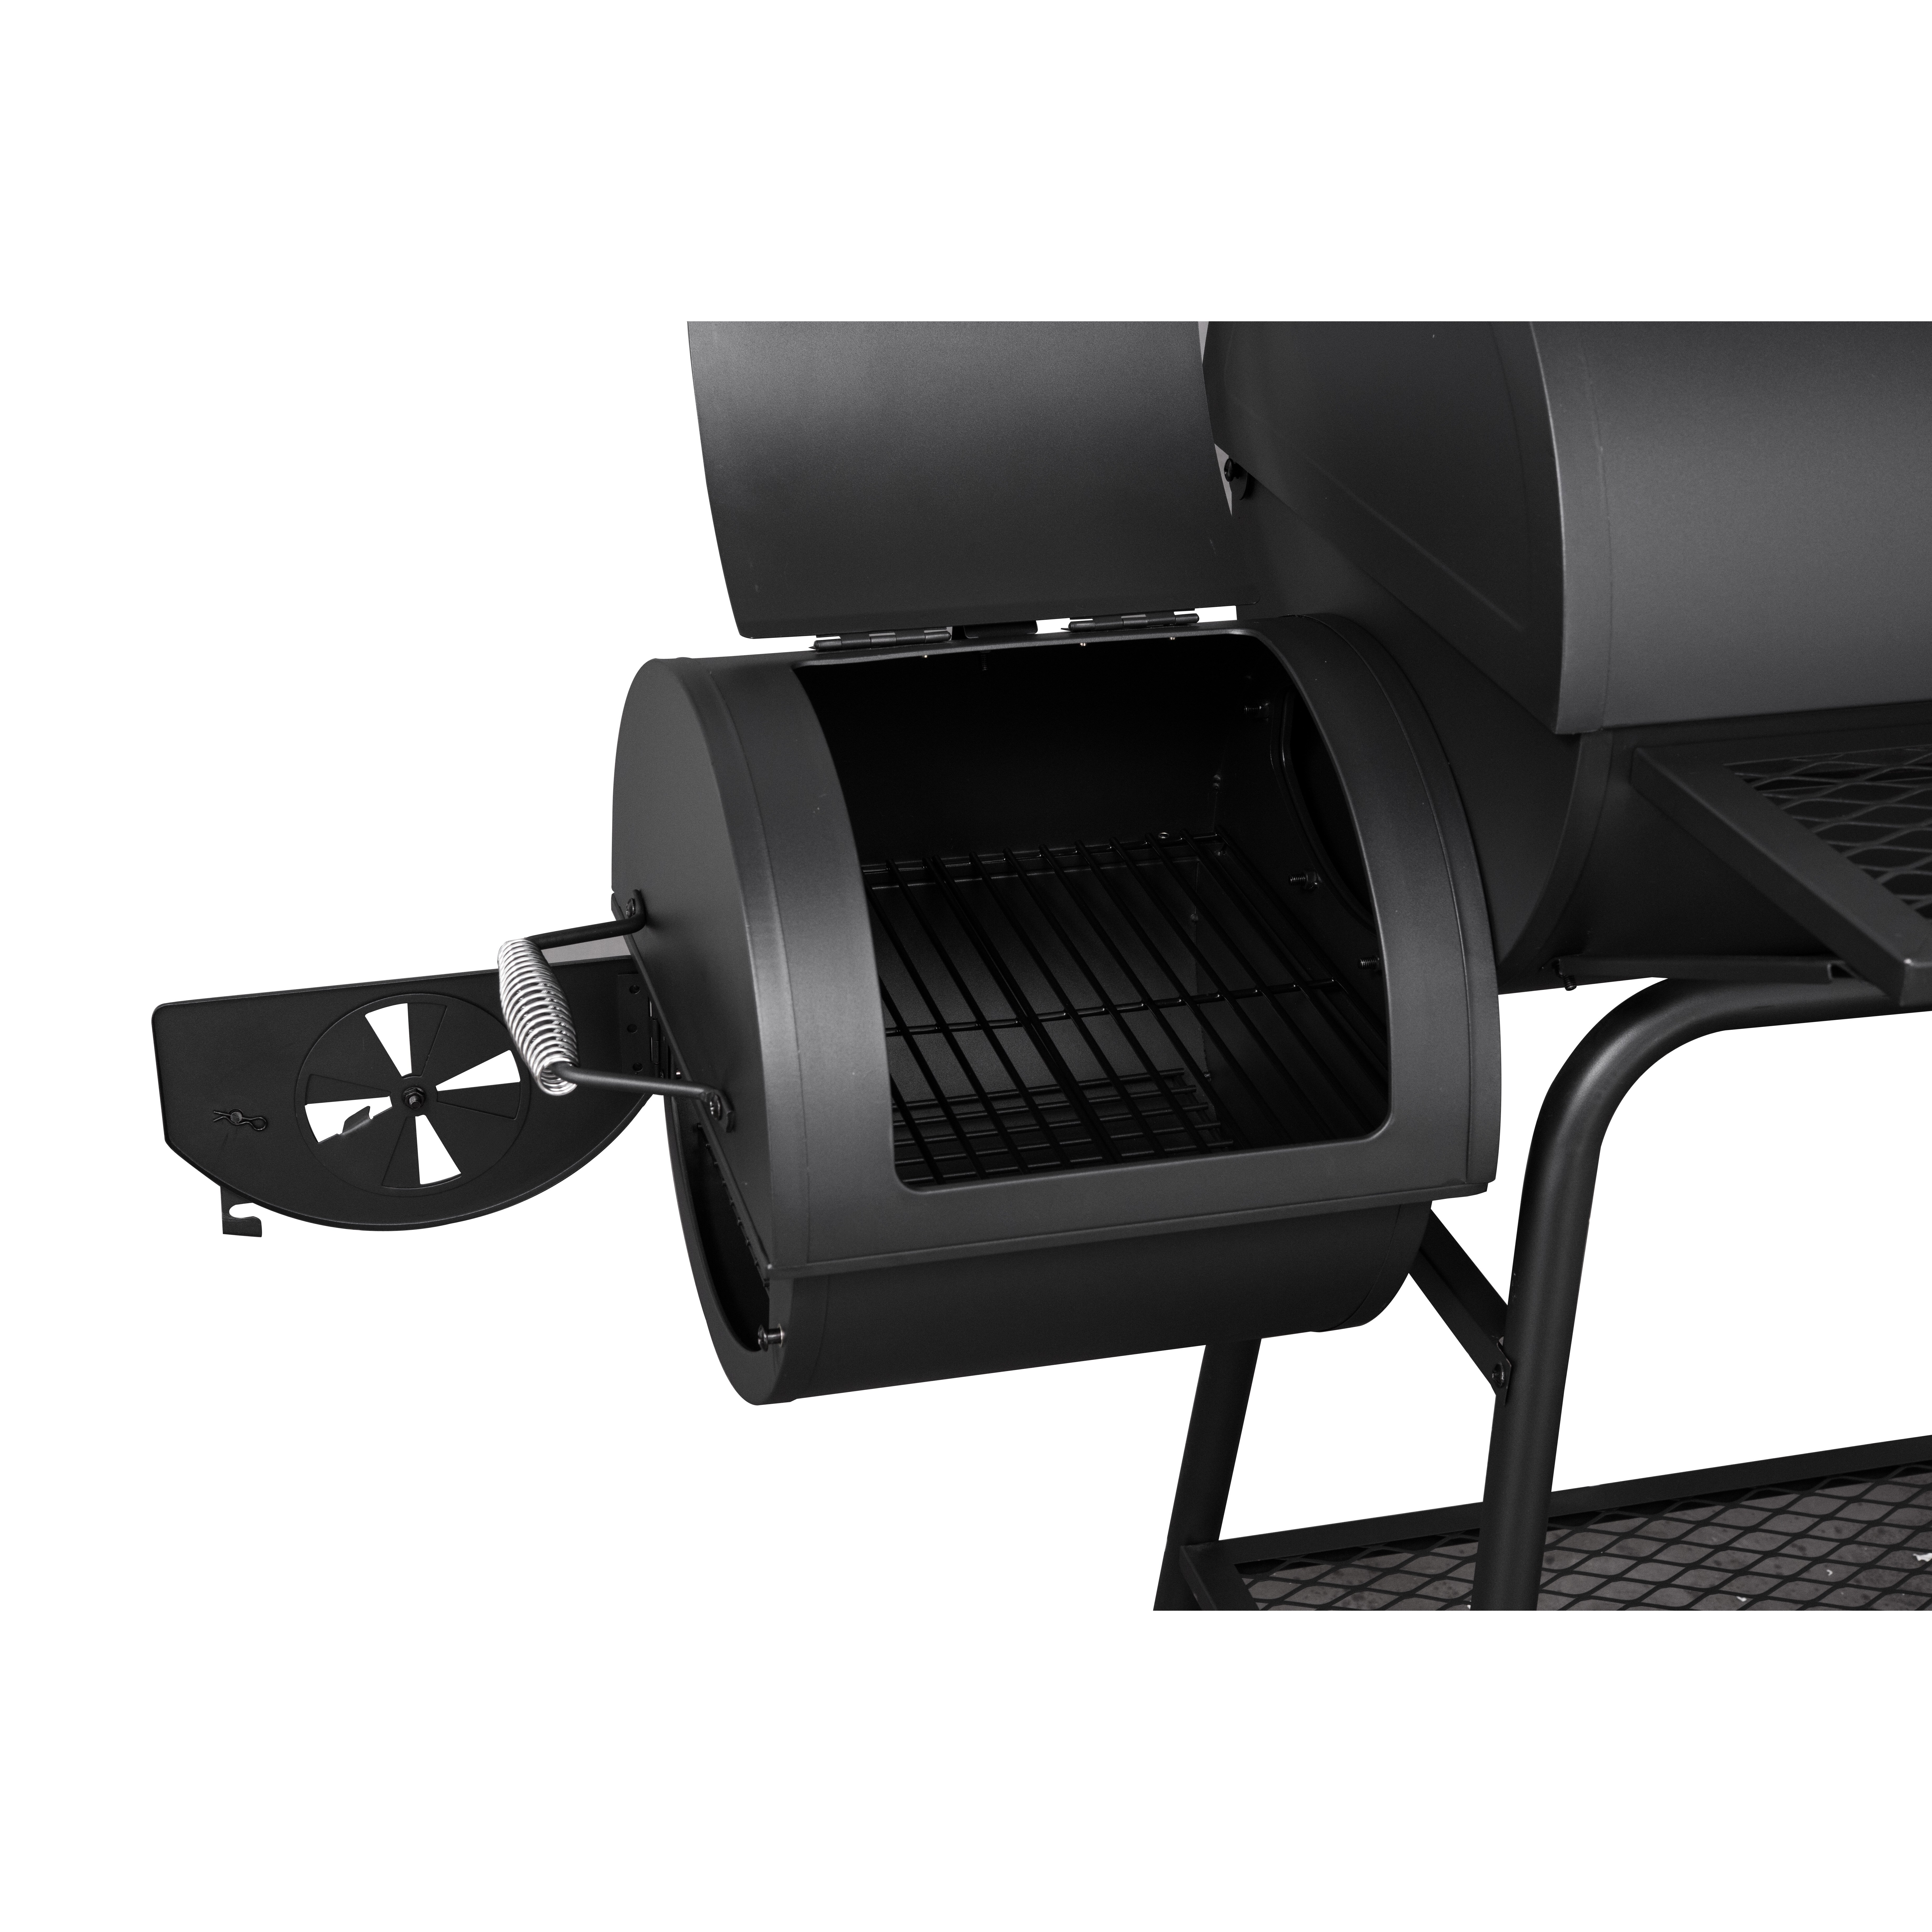 royal gourmet 45 3 charcoal grill with offset smoker reviews. Black Bedroom Furniture Sets. Home Design Ideas